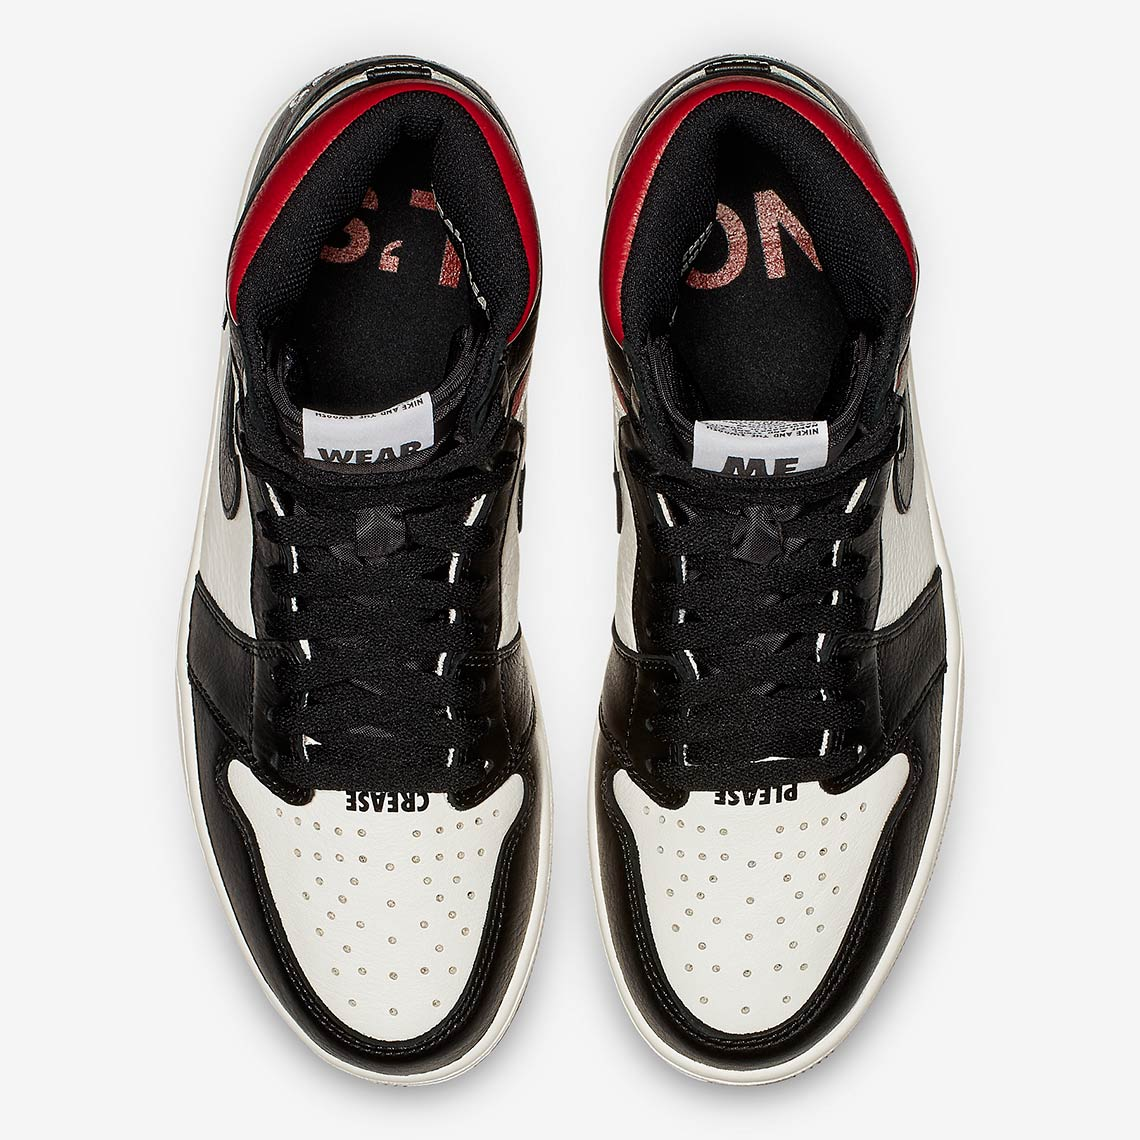 pretty nice 85a97 5fcc3 Jordan 1 Not For Resale Red Buying Guide   SneakerNews.com